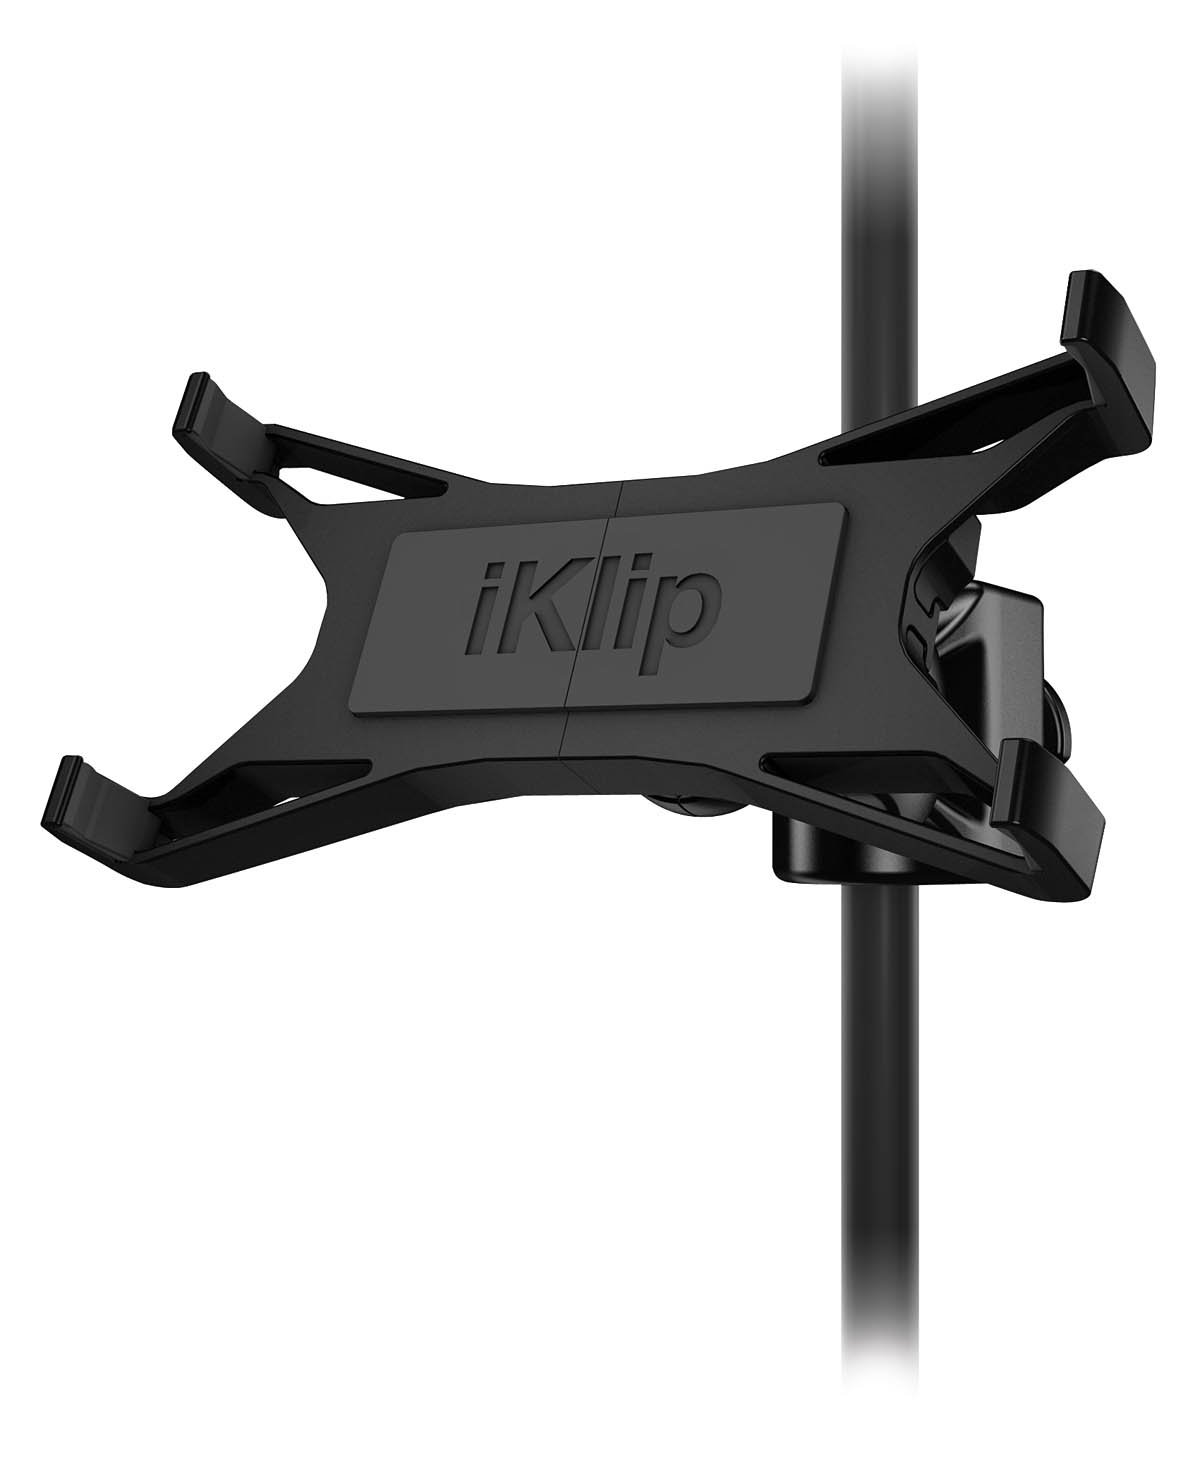 IK Multimedia iKlip Xpand universal mic stand support for iPad and tablets by IK Multimedia (Image #1)